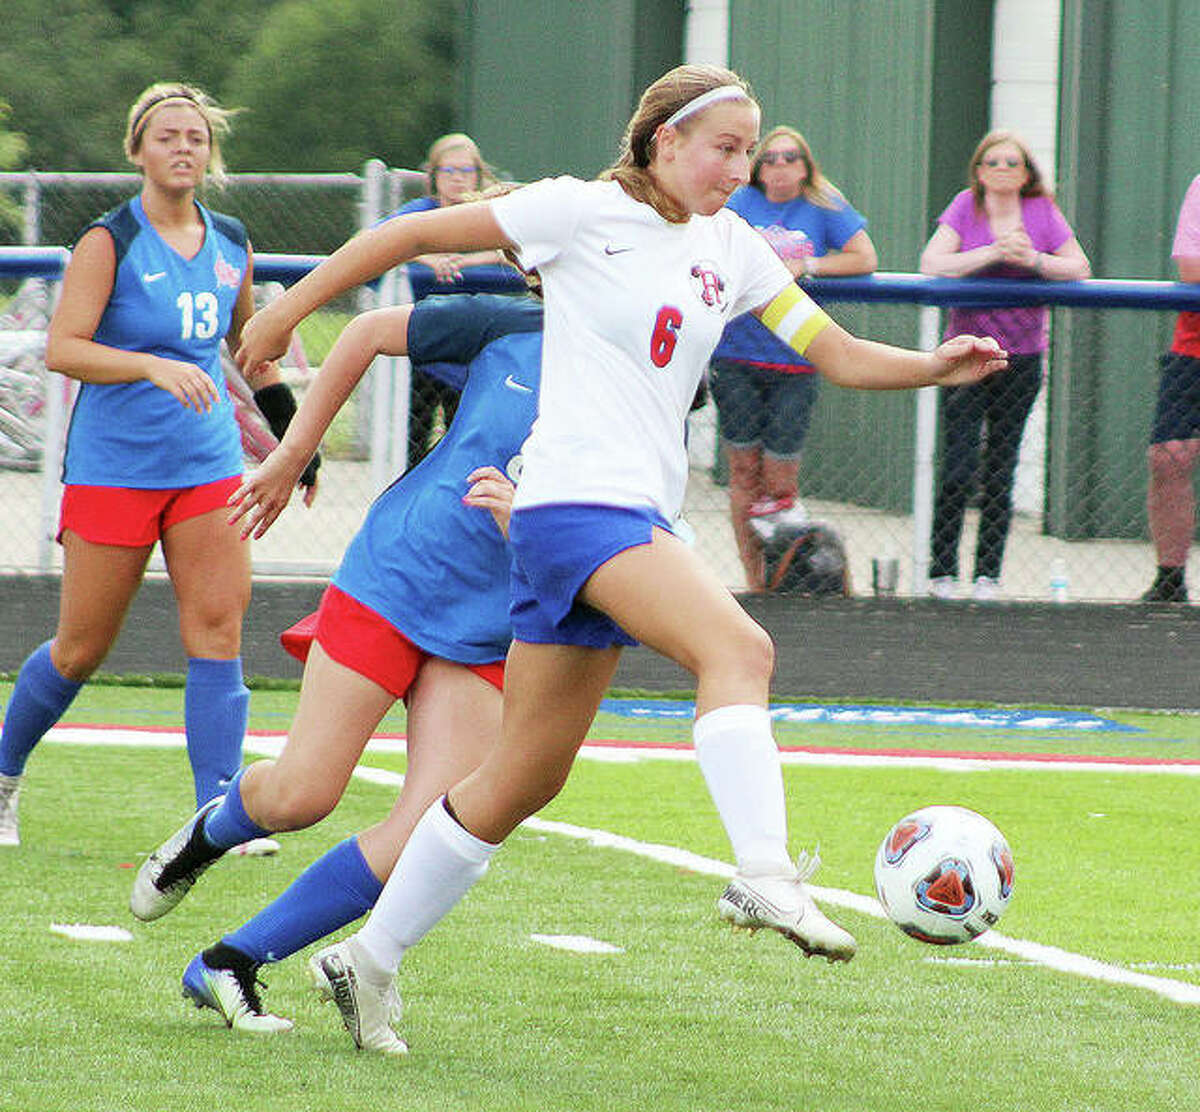 Macie Lucas controls the ball as she heads upfield Tuesday in 1A sectional semifinal action at Carlinville. She scored a goal in her team's 4-0 victory.